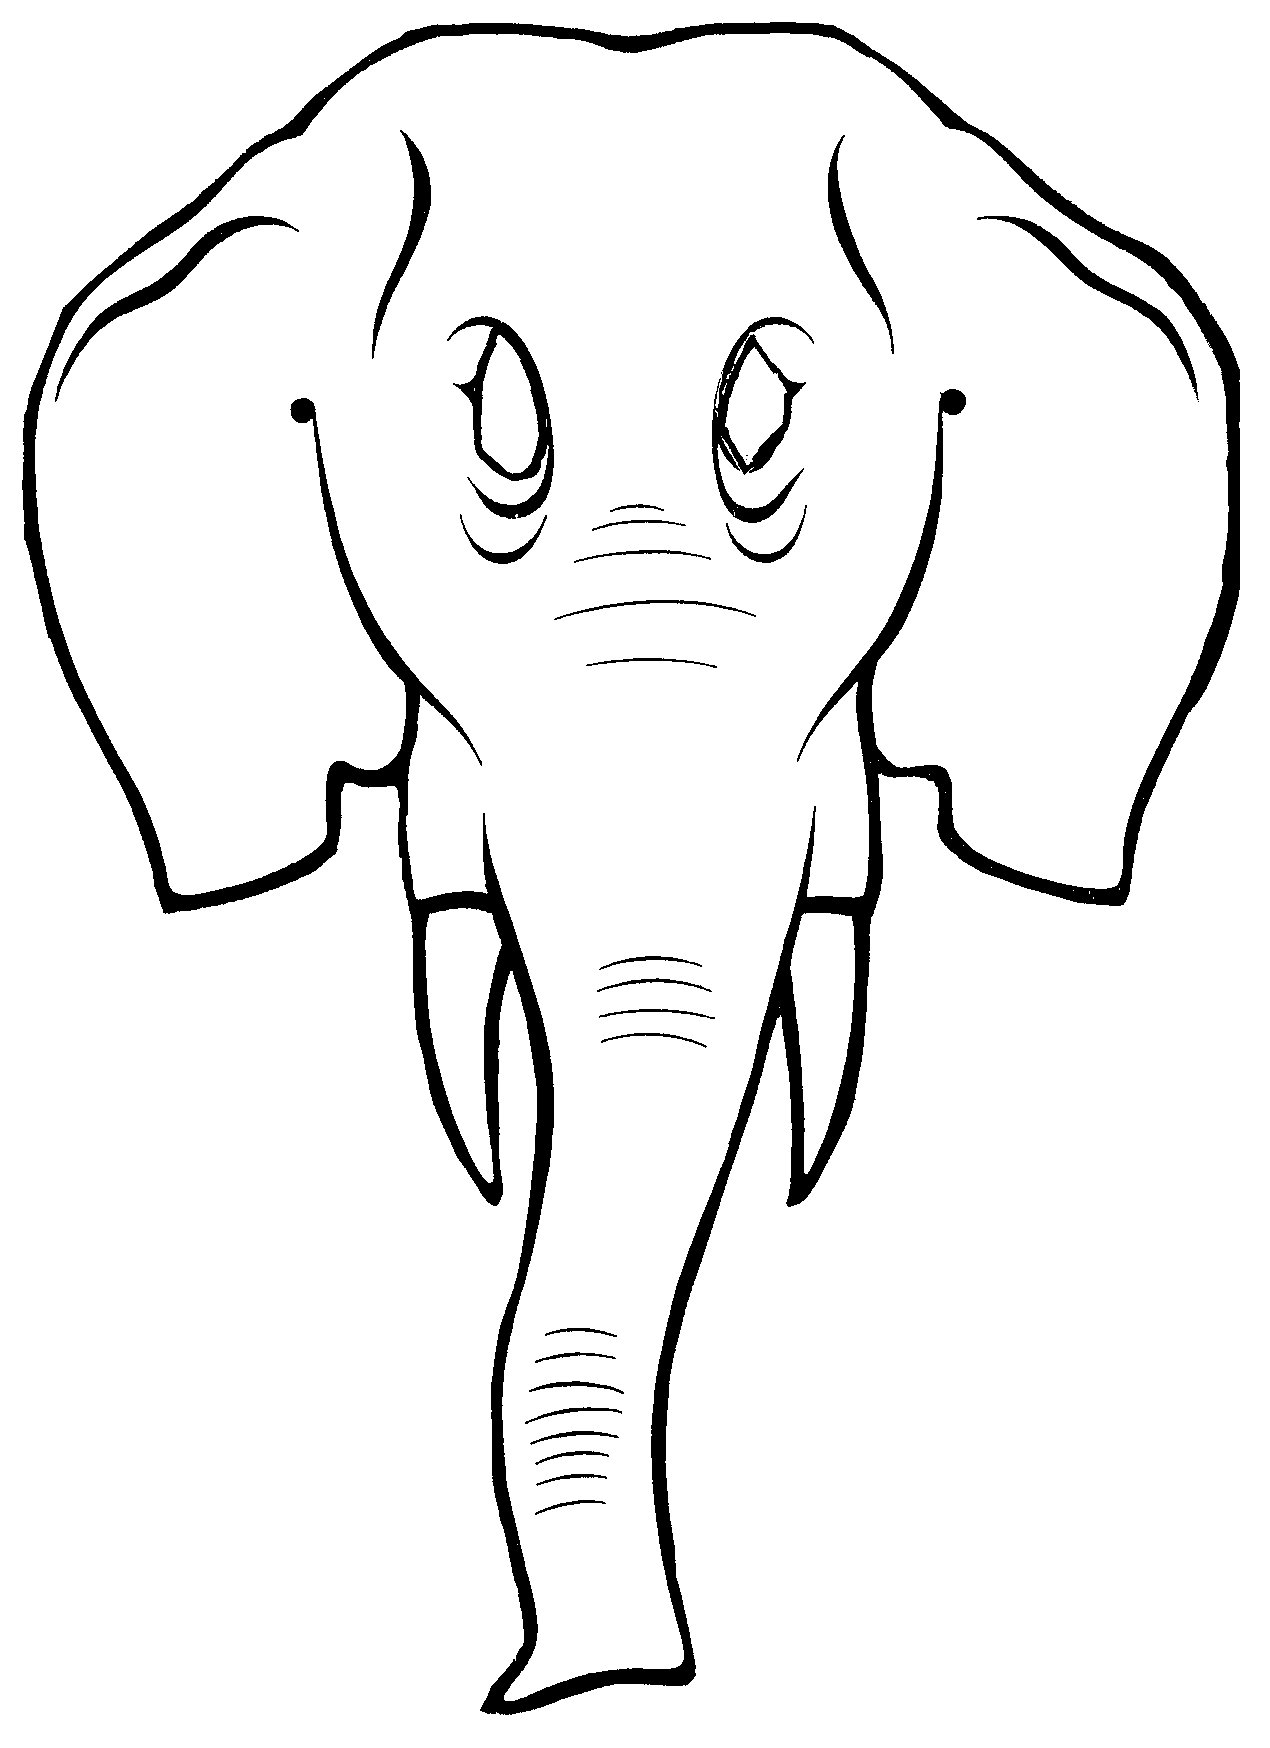 Baby Elephant Template Cartoon Drawing At Getdrawings Com Free For